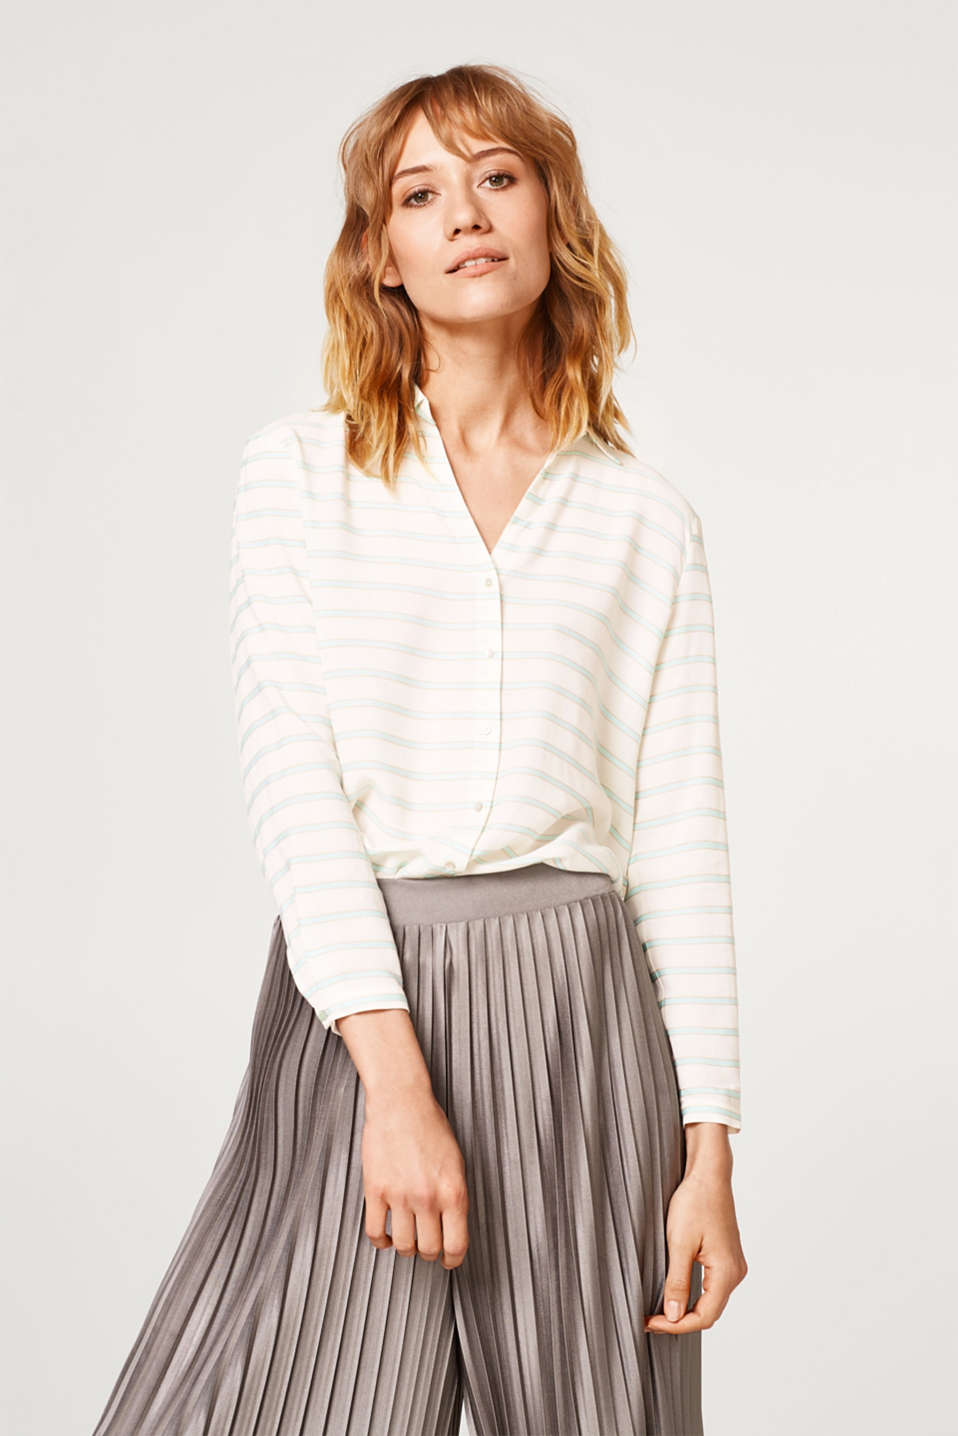 Esprit - Striped blouse with an open shirt collar